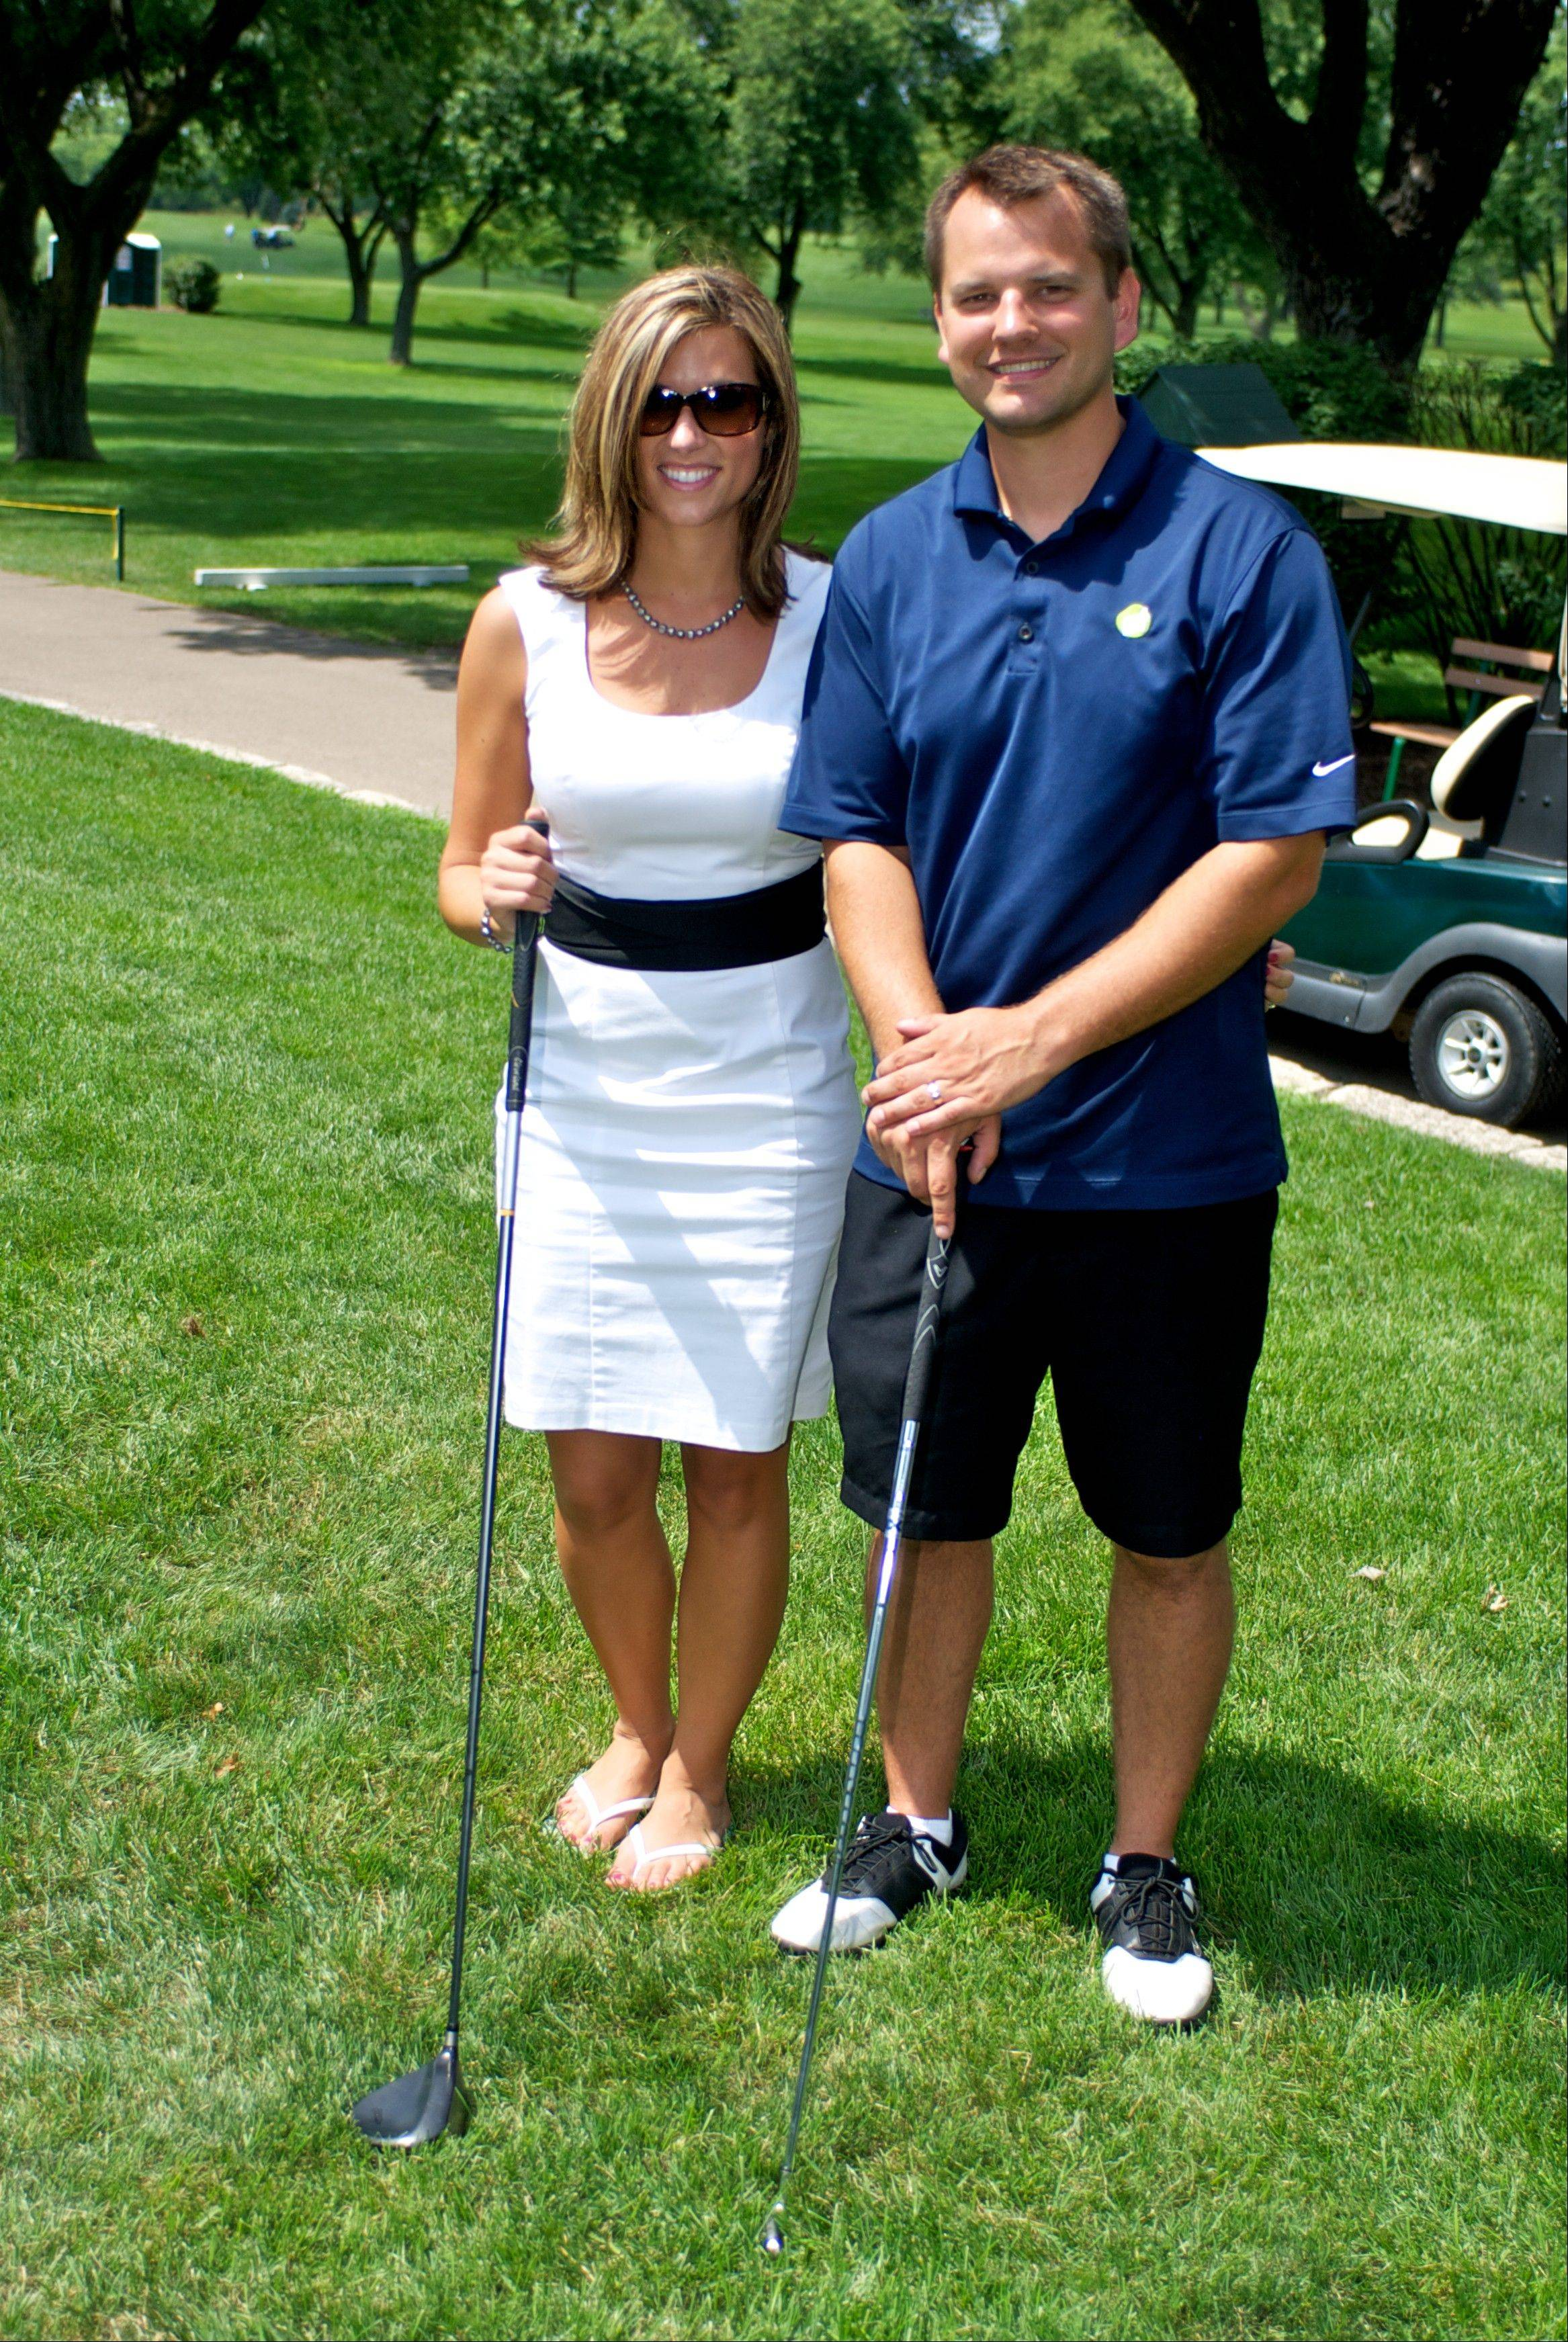 After fighting back cancer twice, Phil Zielke launched Phil's Friends to provide spiritual support to cancer patients. With donations and money raised at fundraisers -- like the annual golf outing Zielke hosts with his wife, Carrie -- the group sends prayers and care packages to patients.